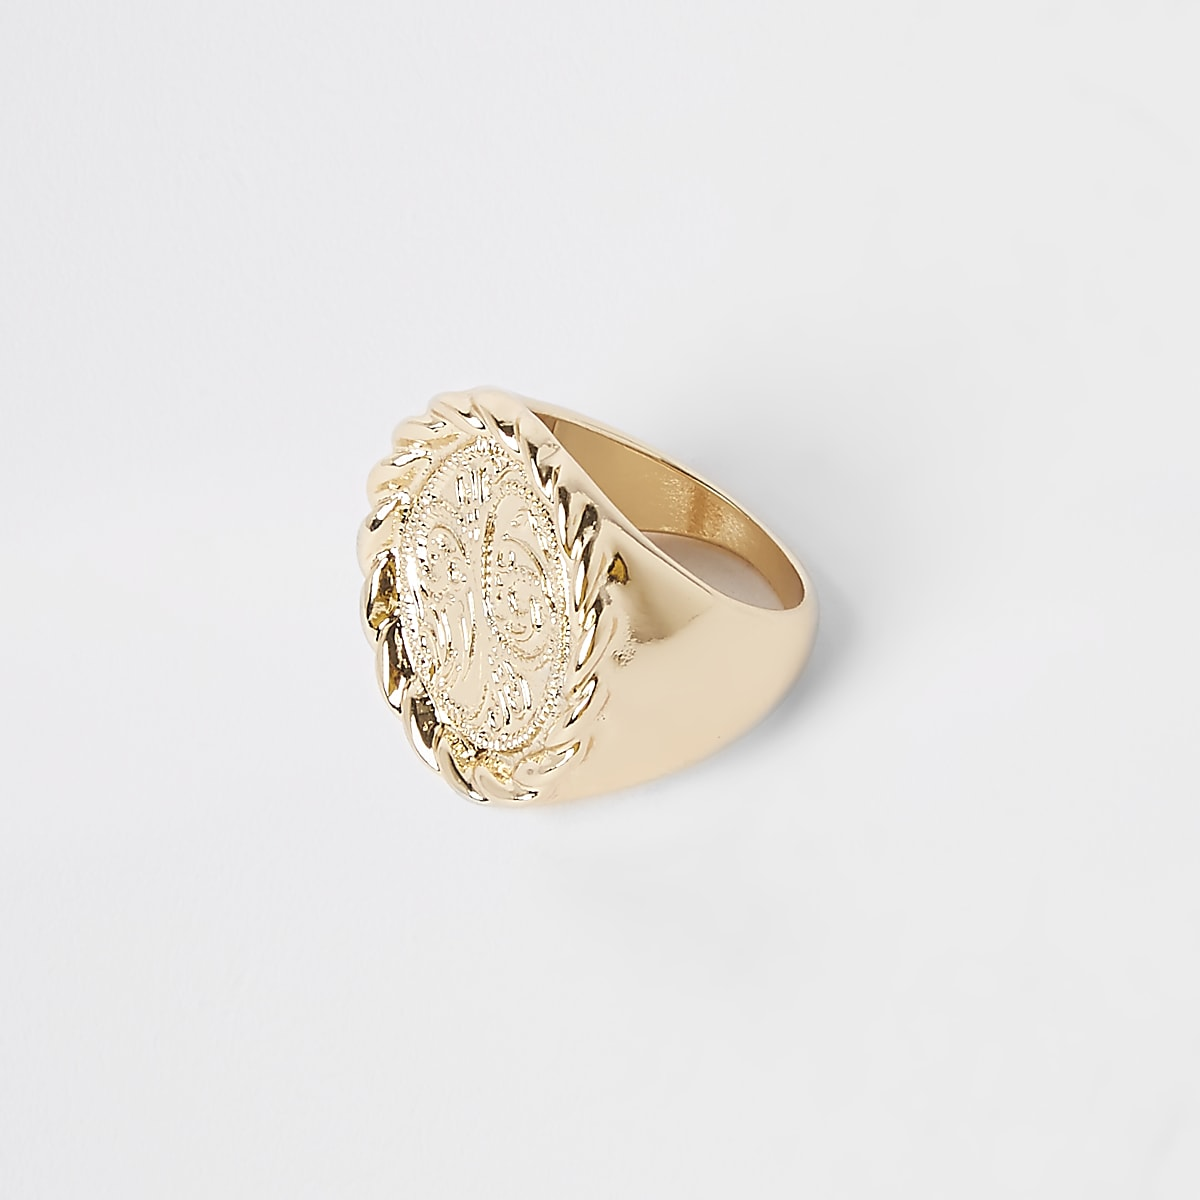 Gold colour signet ring